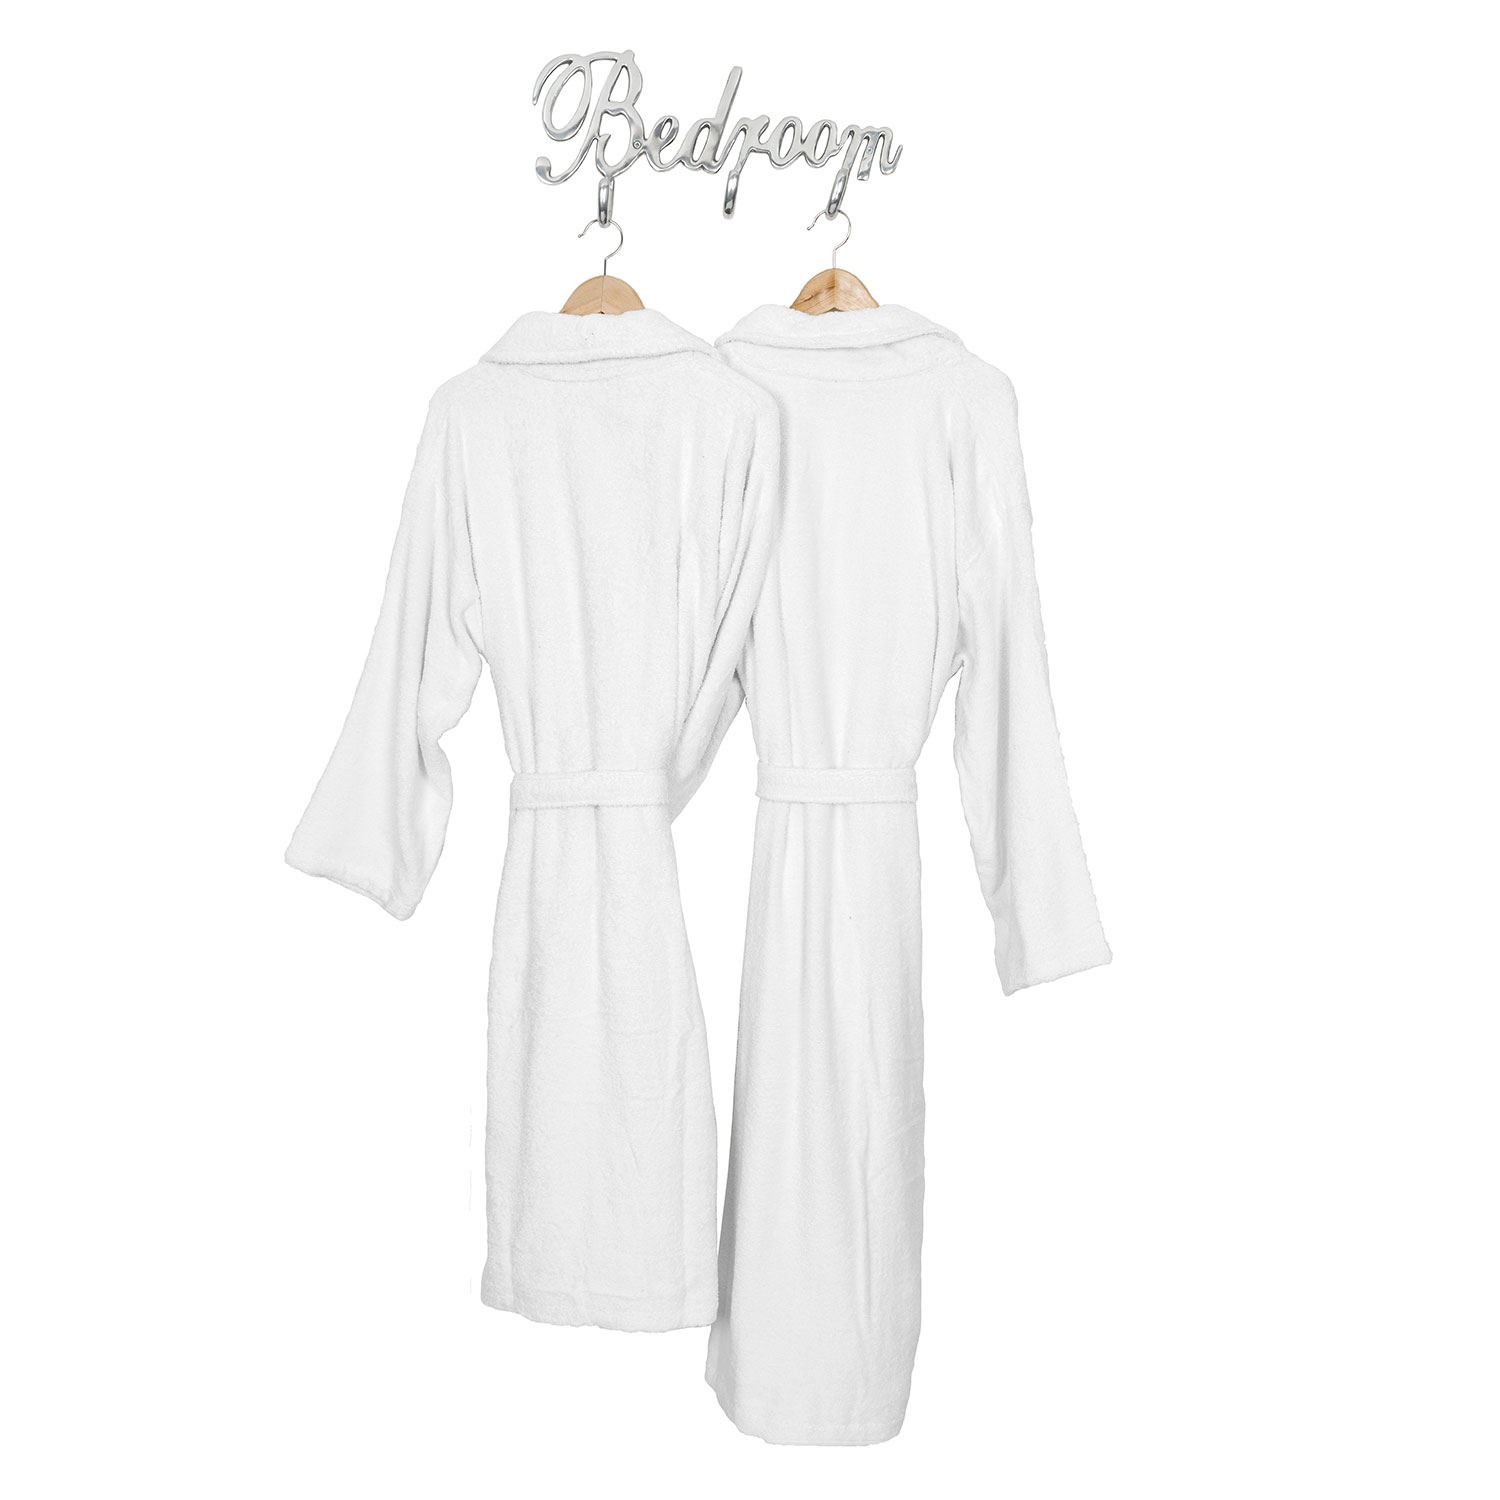 fd8898d83c Men Women Shawl Collar Bathrobe Egyptian Cotton Terry Towelling ...